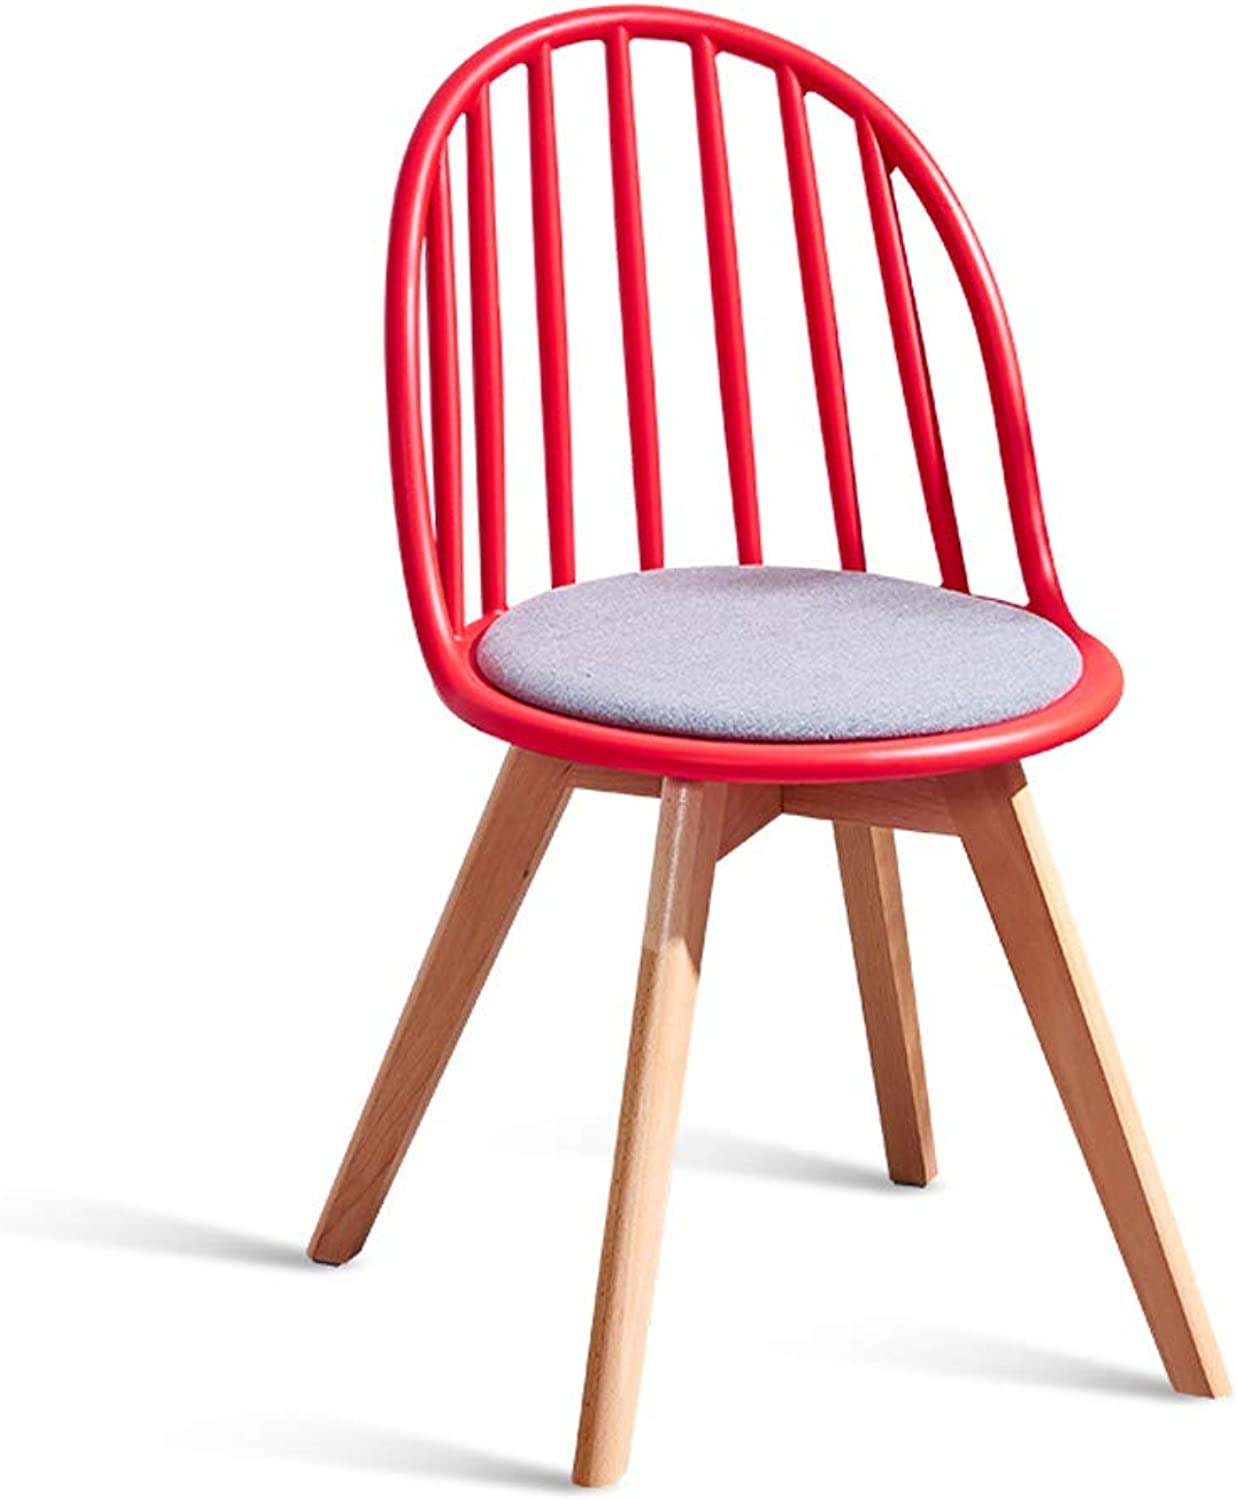 Nordic Solid Wood Dining Chair Home Back Chair Restaurant Modern Minimalist Windsor Chair Lazy Leisure Chair Stool Red